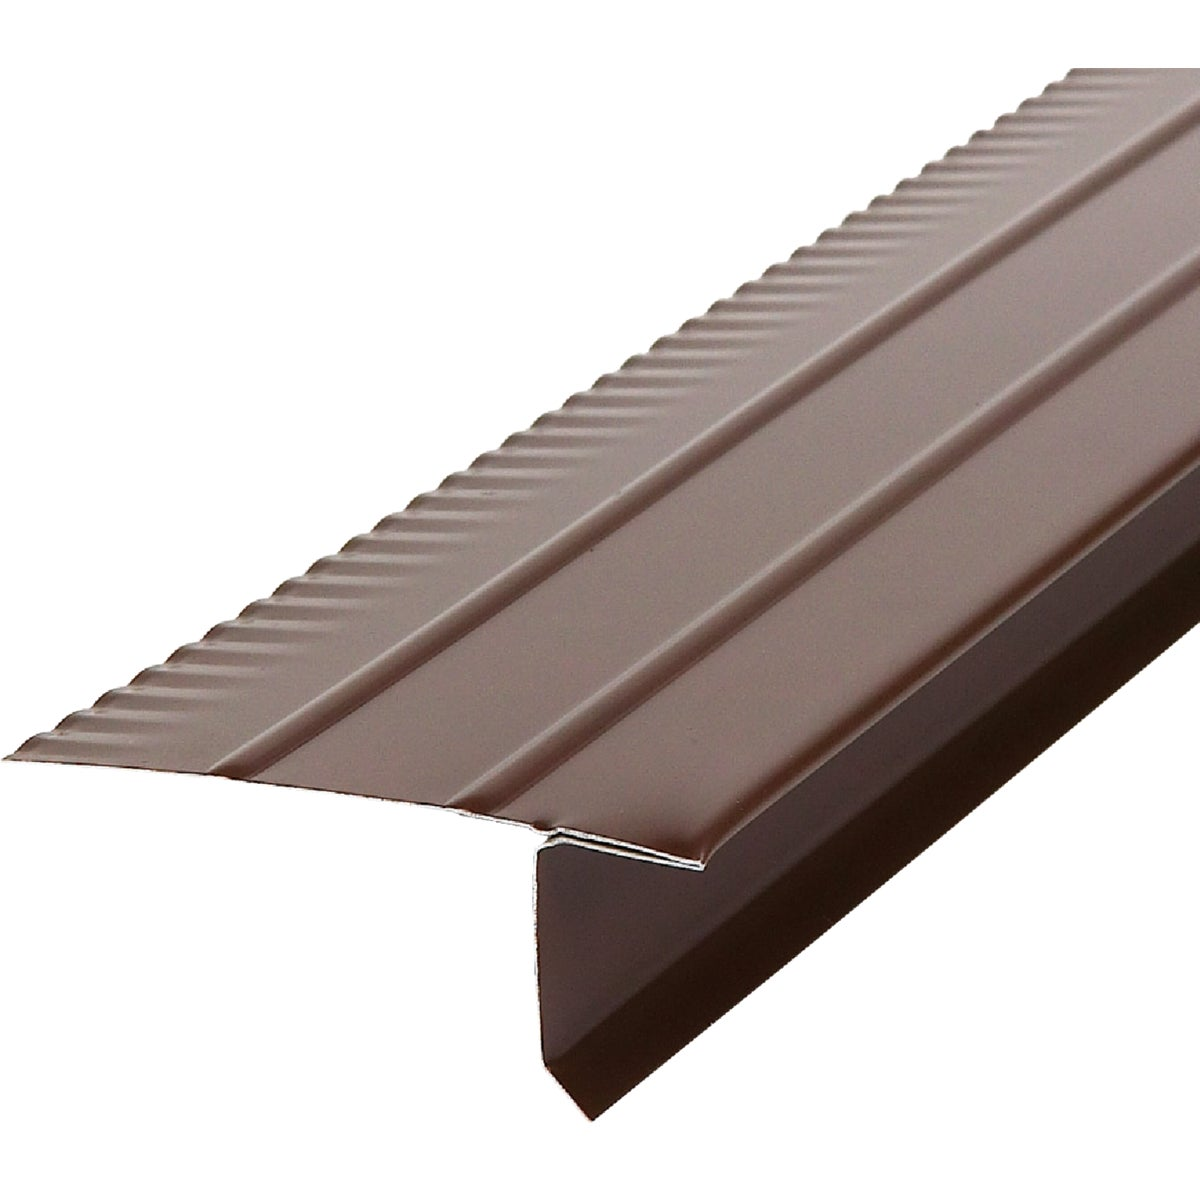 10' BRN DRIP EDGE - 5701519120 by Amerimax Home Prod